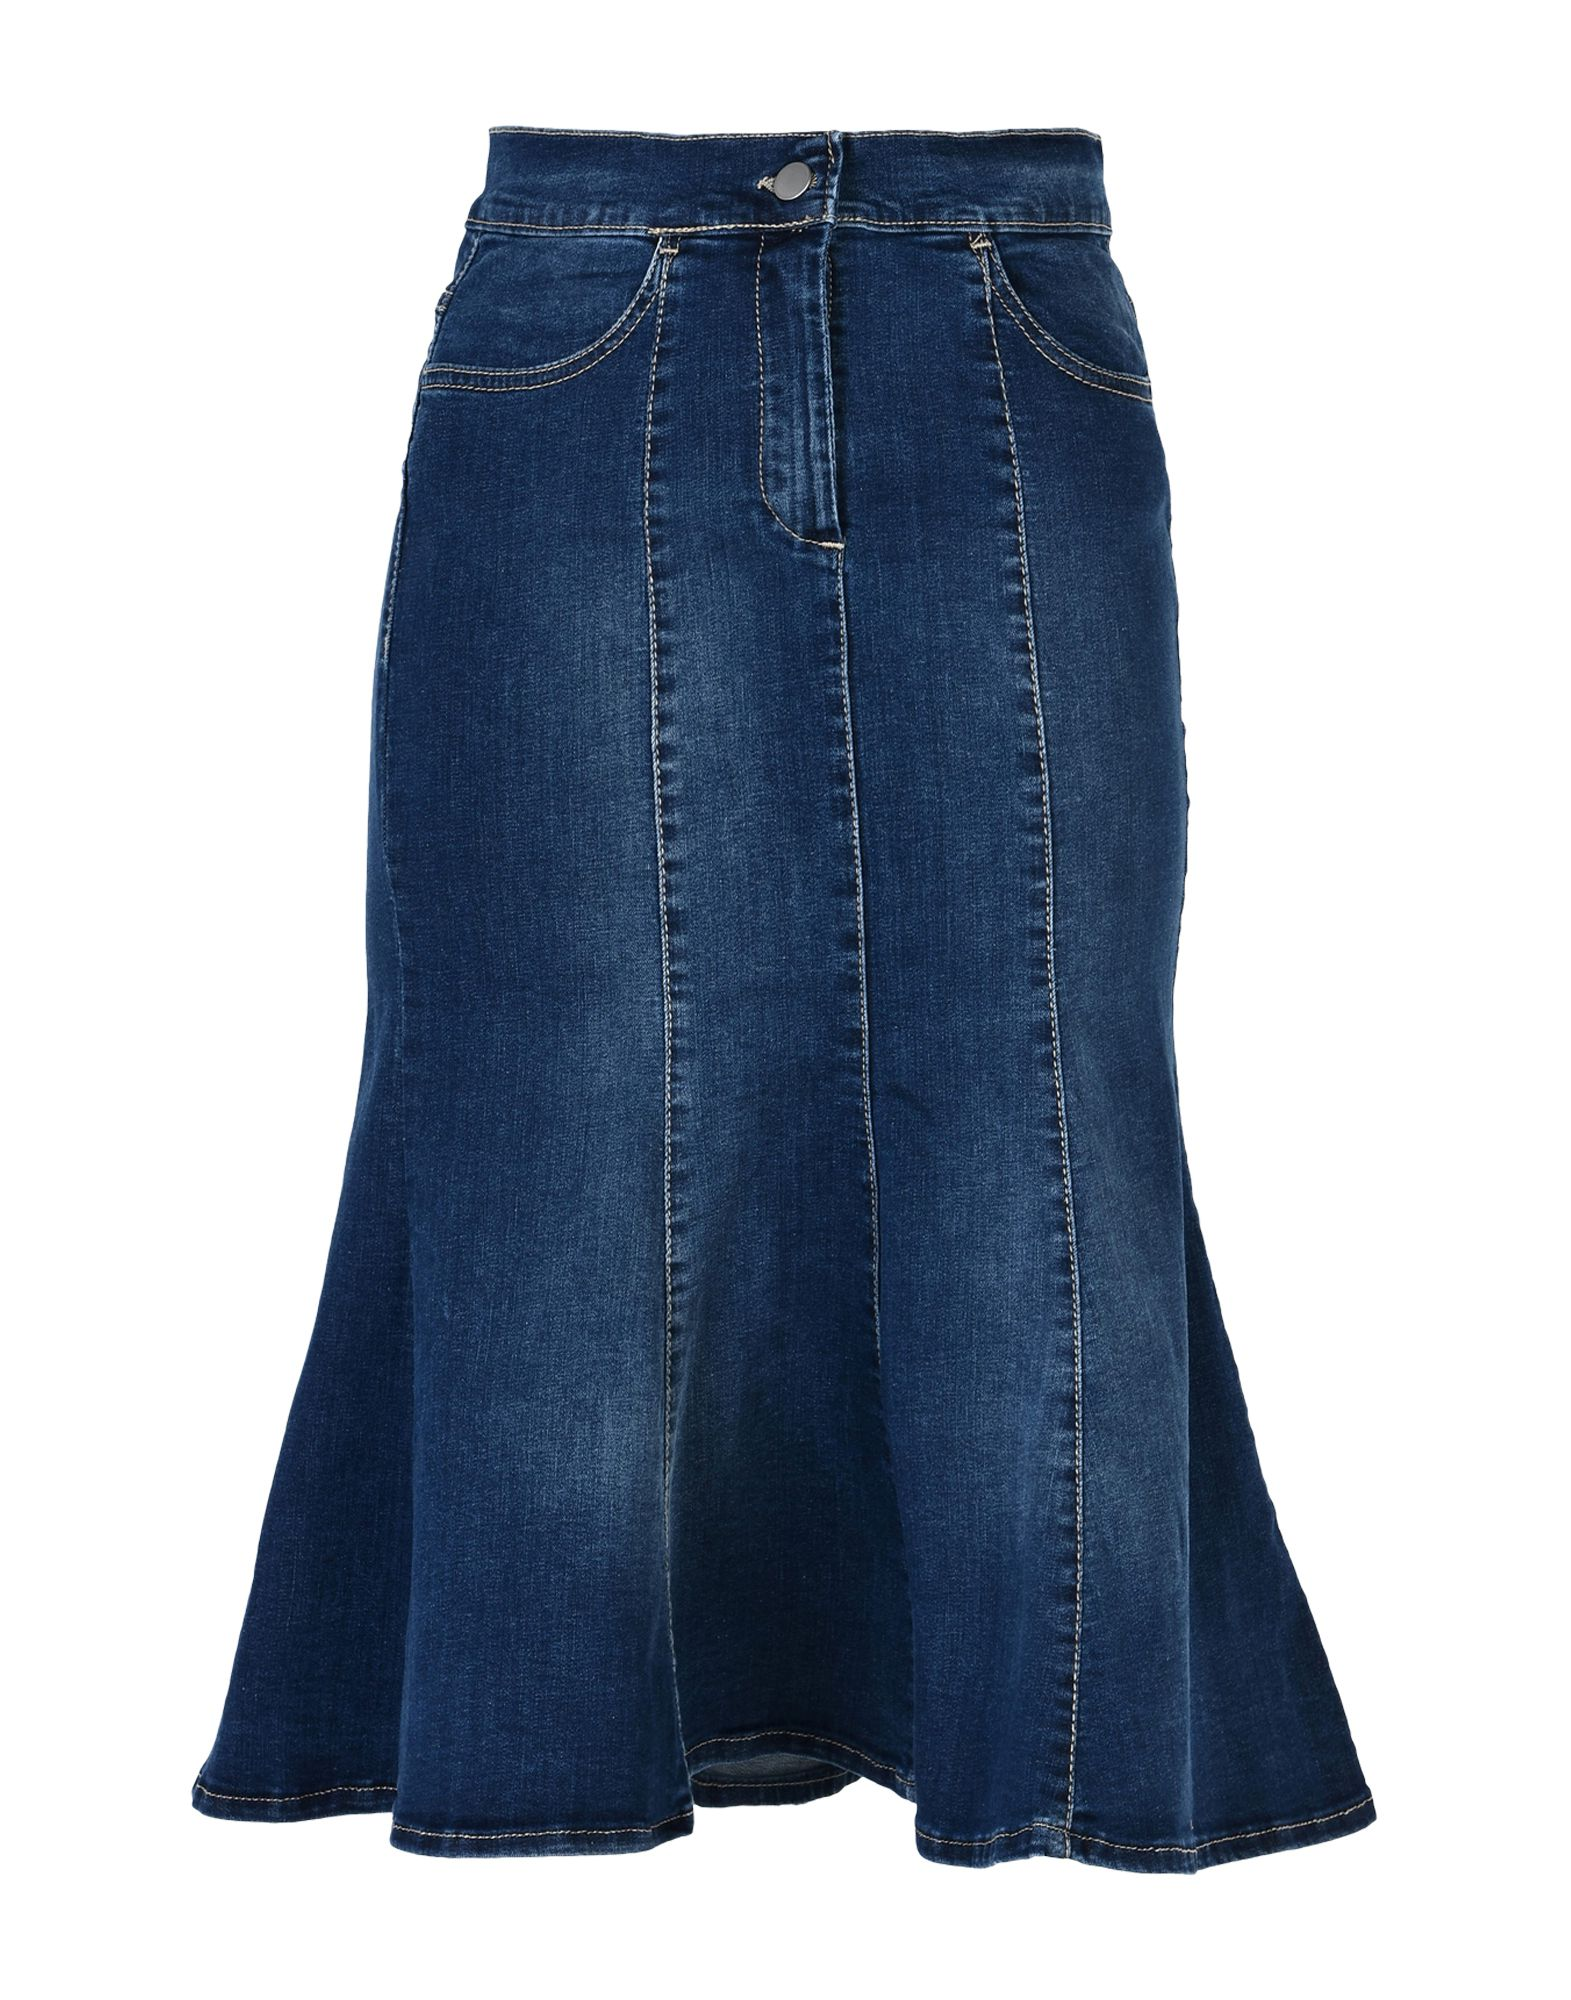 Favoloso Jean skirts online: mini jean skirts, long and short jean skirts  PG56